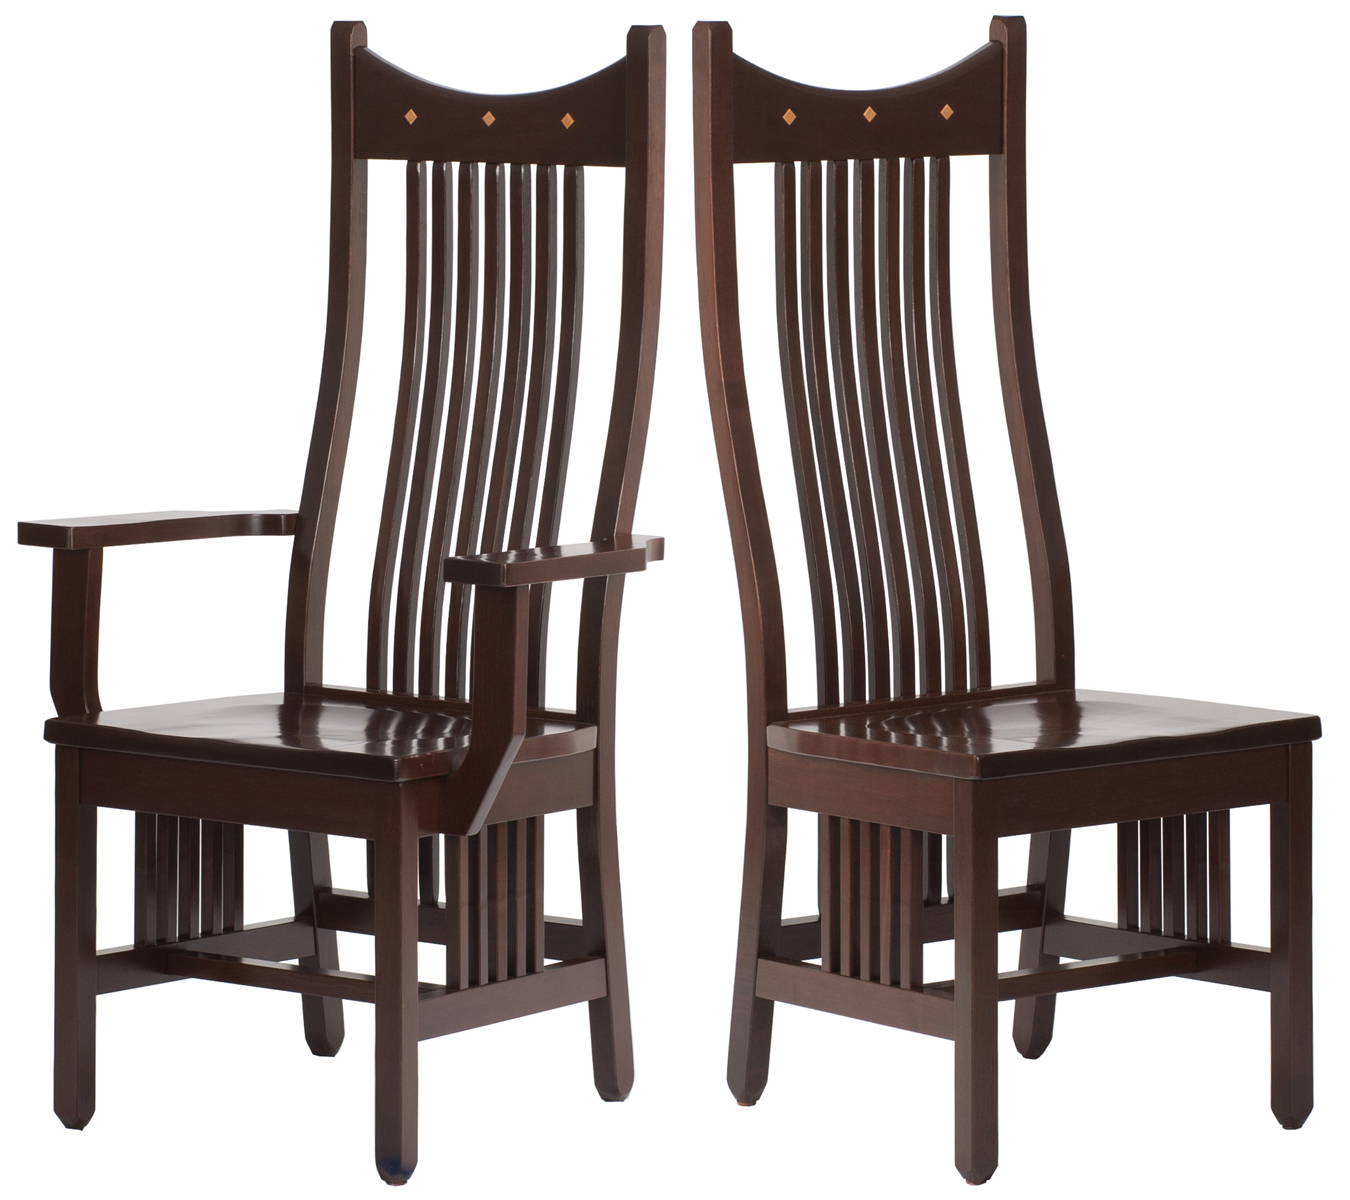 Western Chairs Western Dining Chair Dining Room Chair In The Western Style